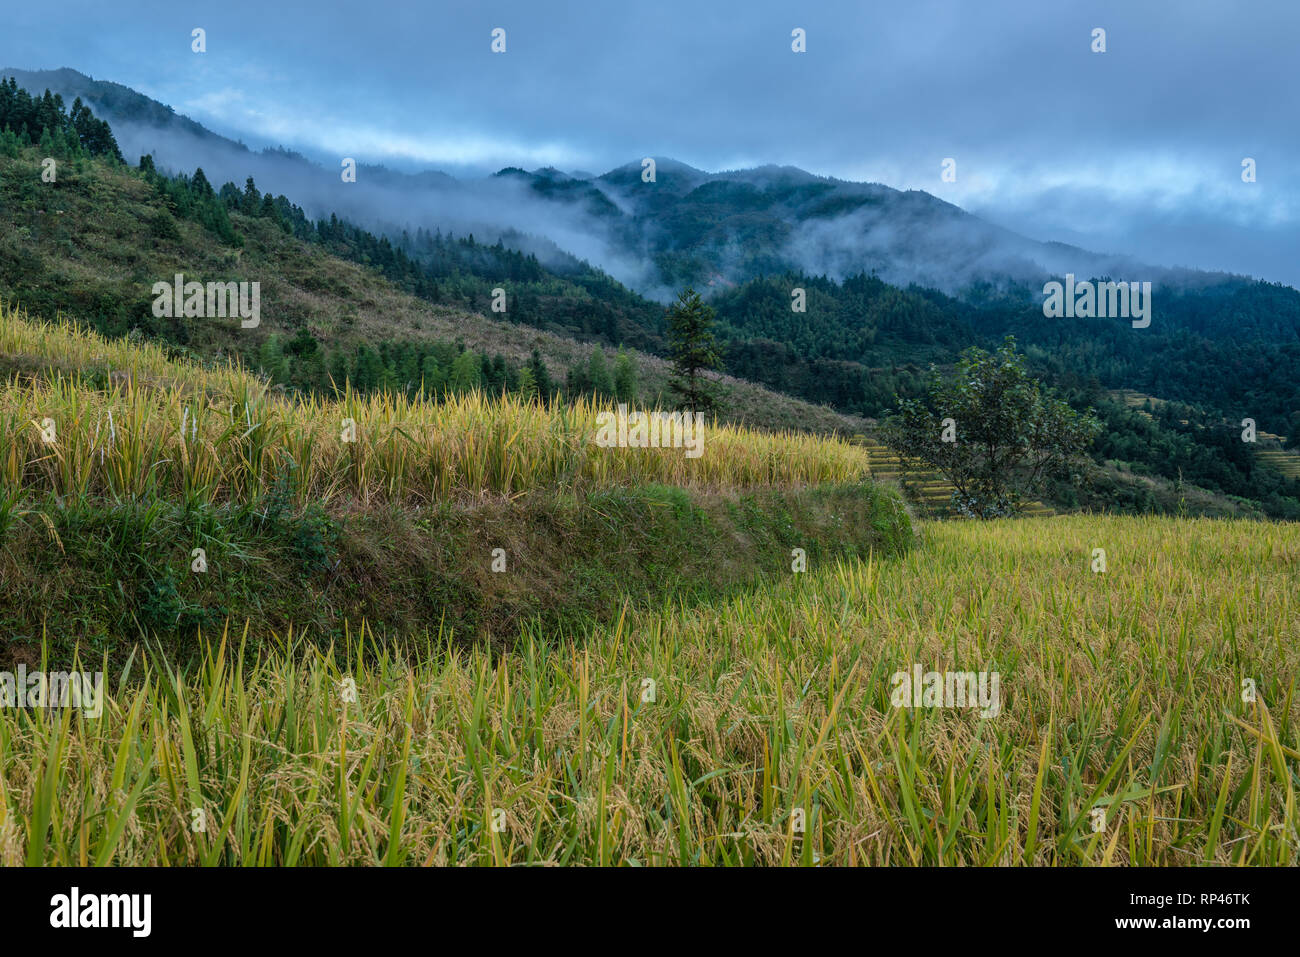 Close-up of view of rice terraces on a foggy day in China Stock Photo